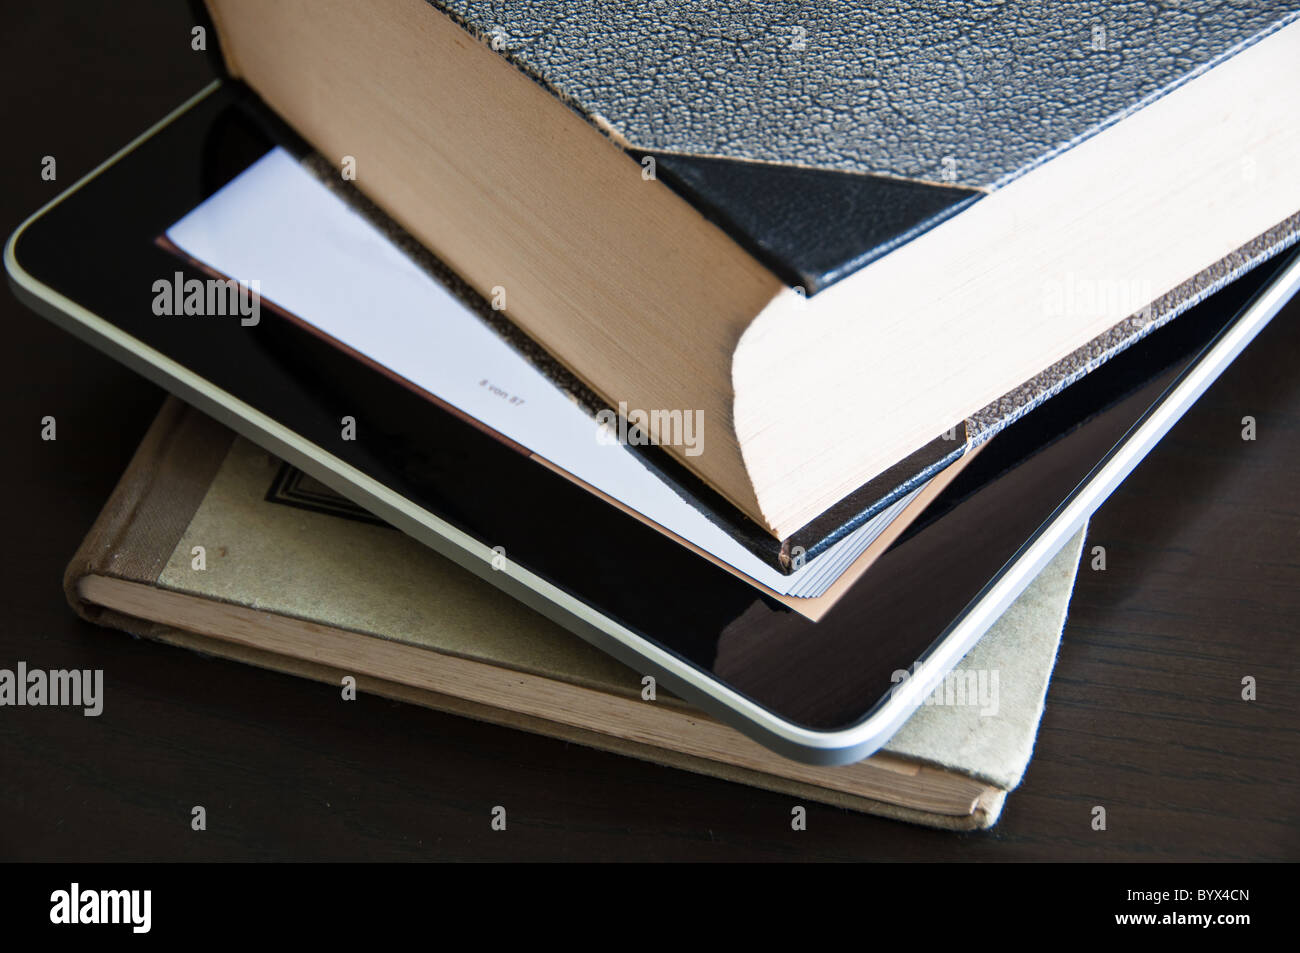 Close-up of two old books with modern digital tablet (eBook reader) in between - Stock Image